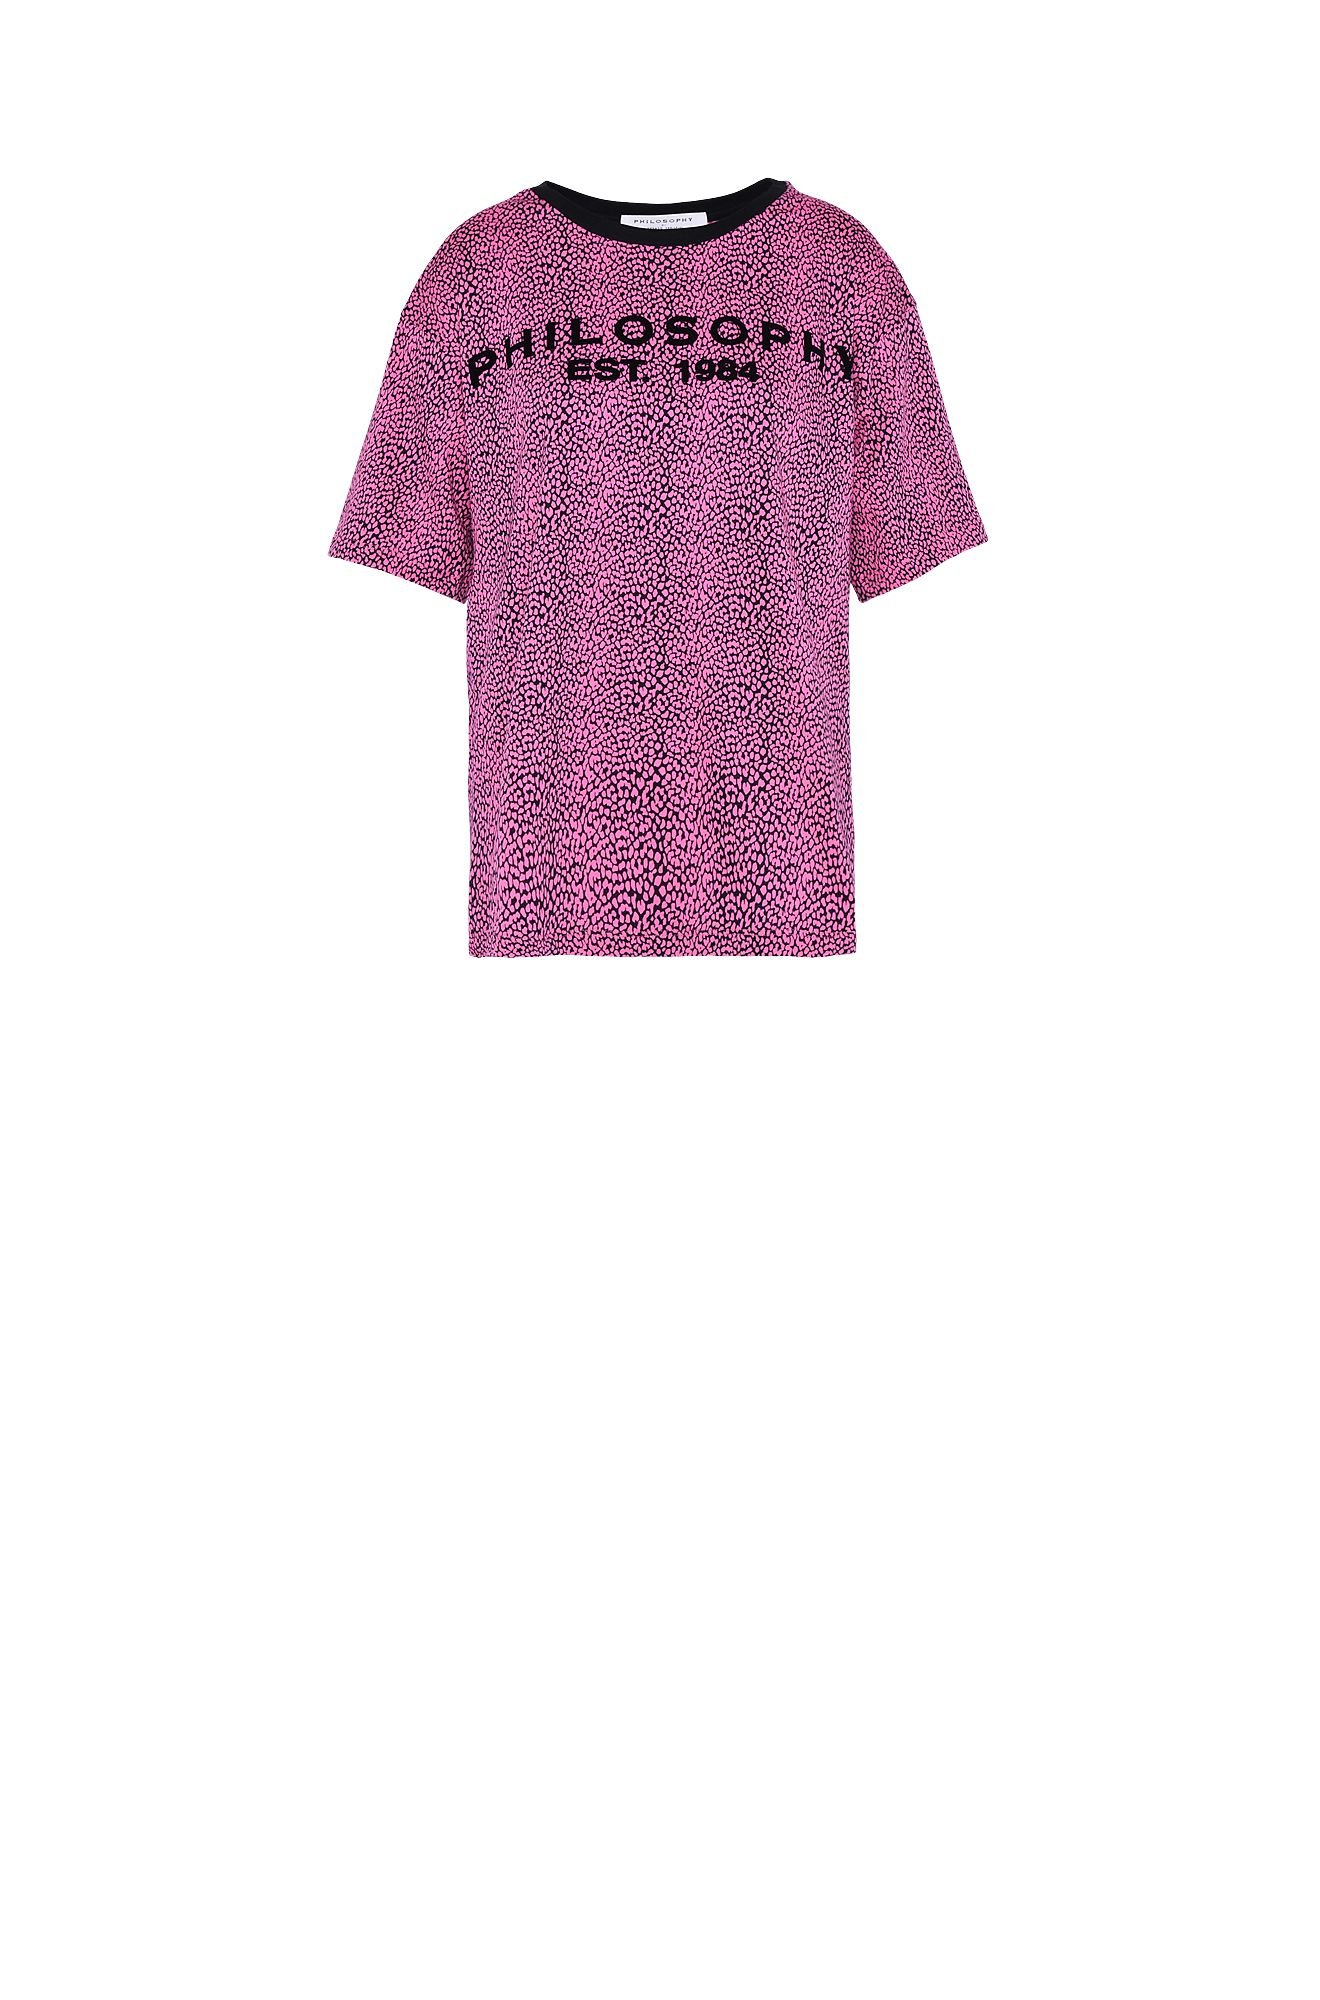 Fuchsia T-shirt with micro animal pattern